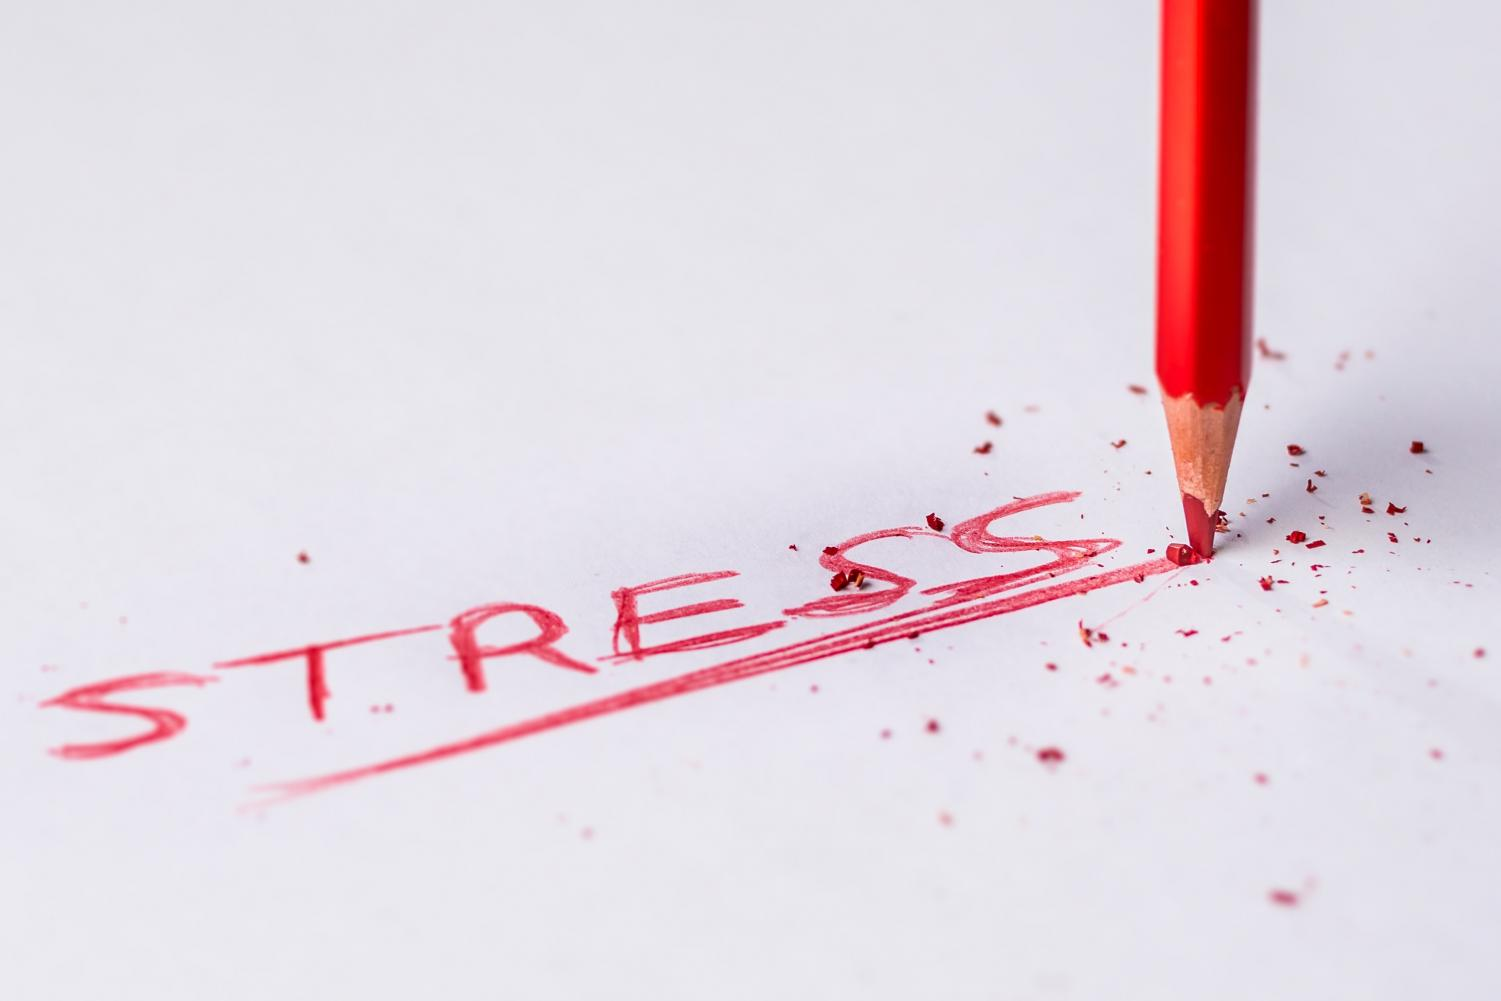 One of the main problems that students cite is stress.